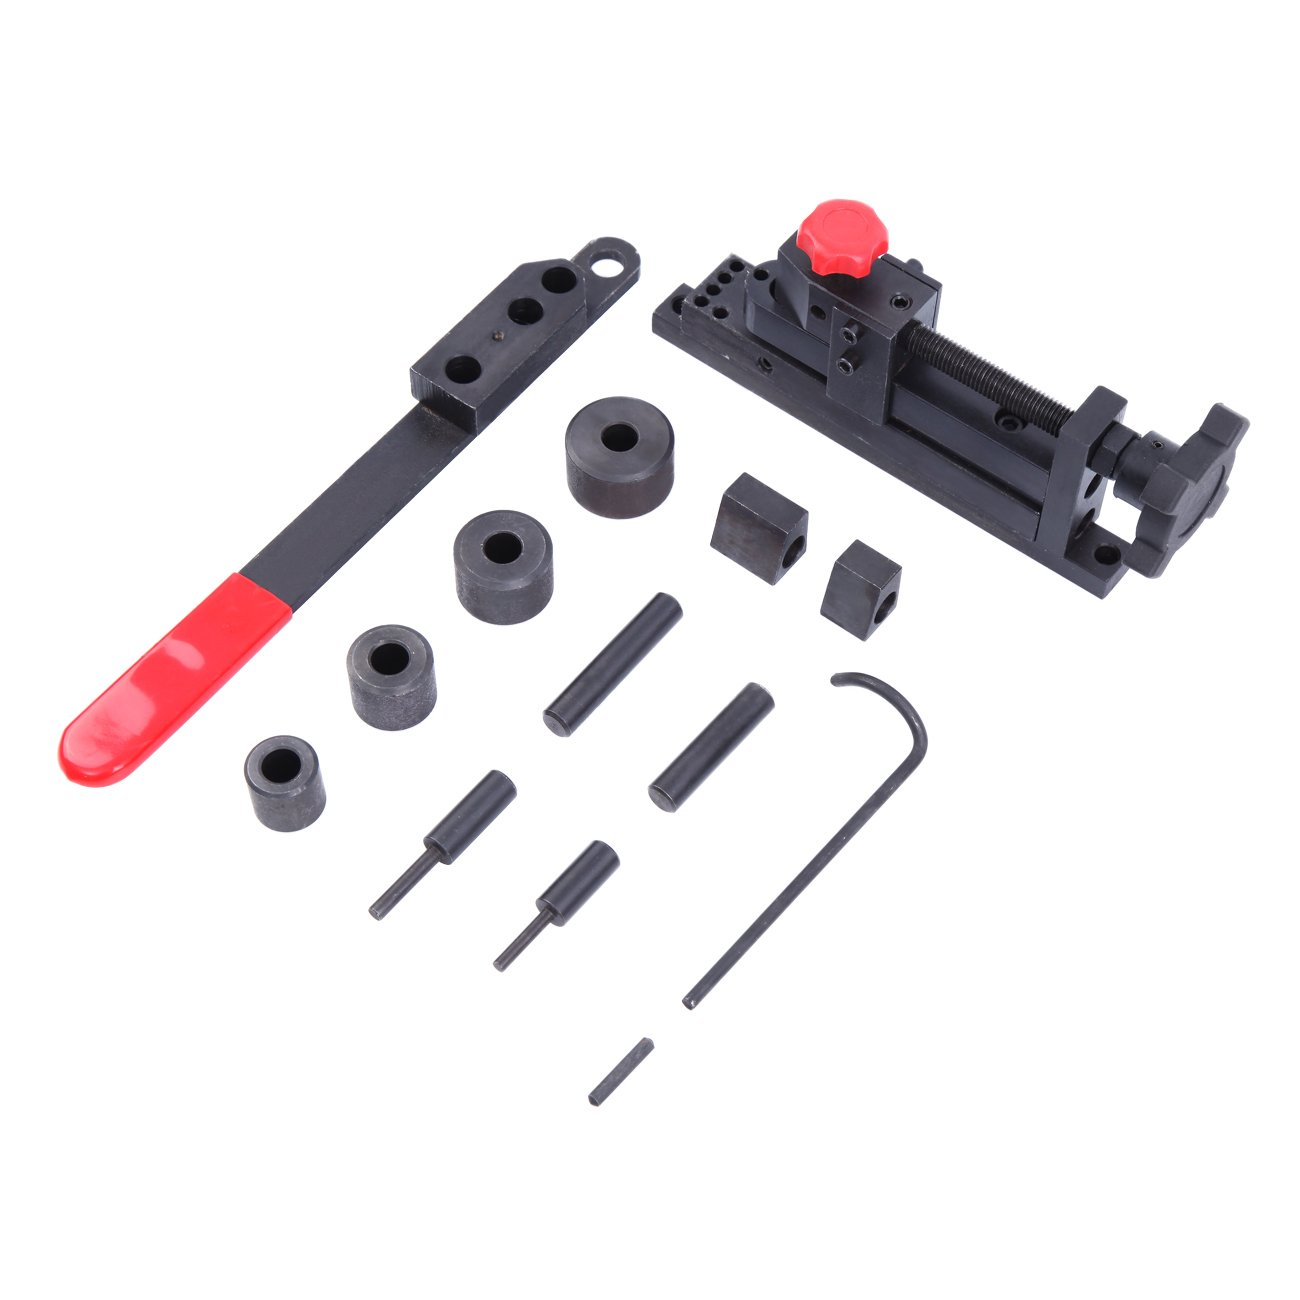 PanelTech Manual Mounting Mini Universal Bending Bender Forms Wire Flat Metal Tubing Pipe Tube Clamp Hook Coil Hardened Tool Bending Machine